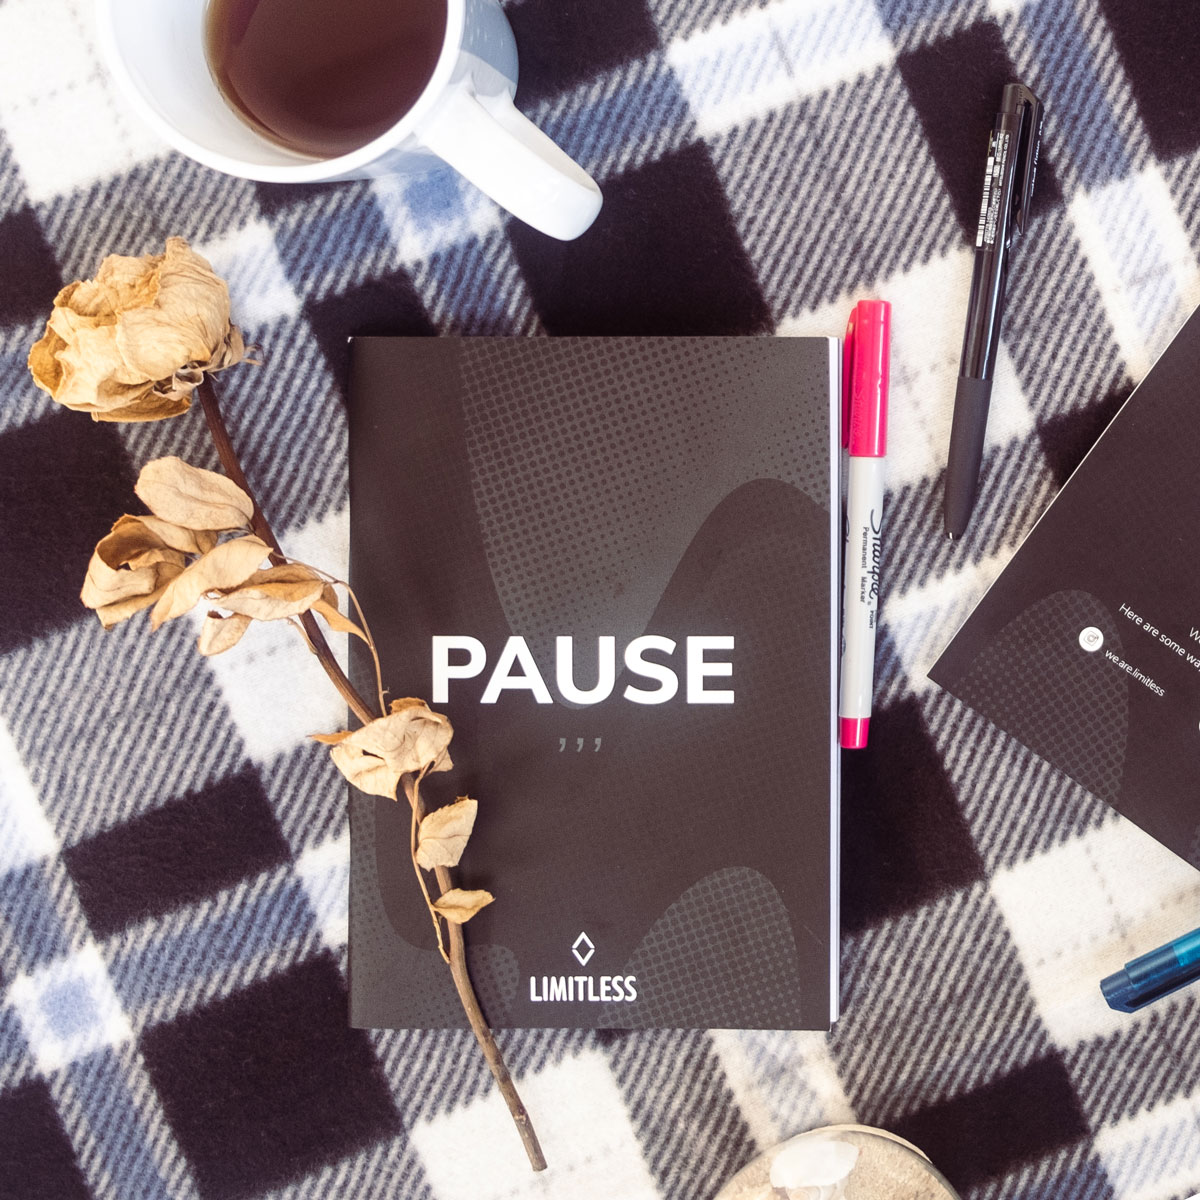 Pause Journal - S$8